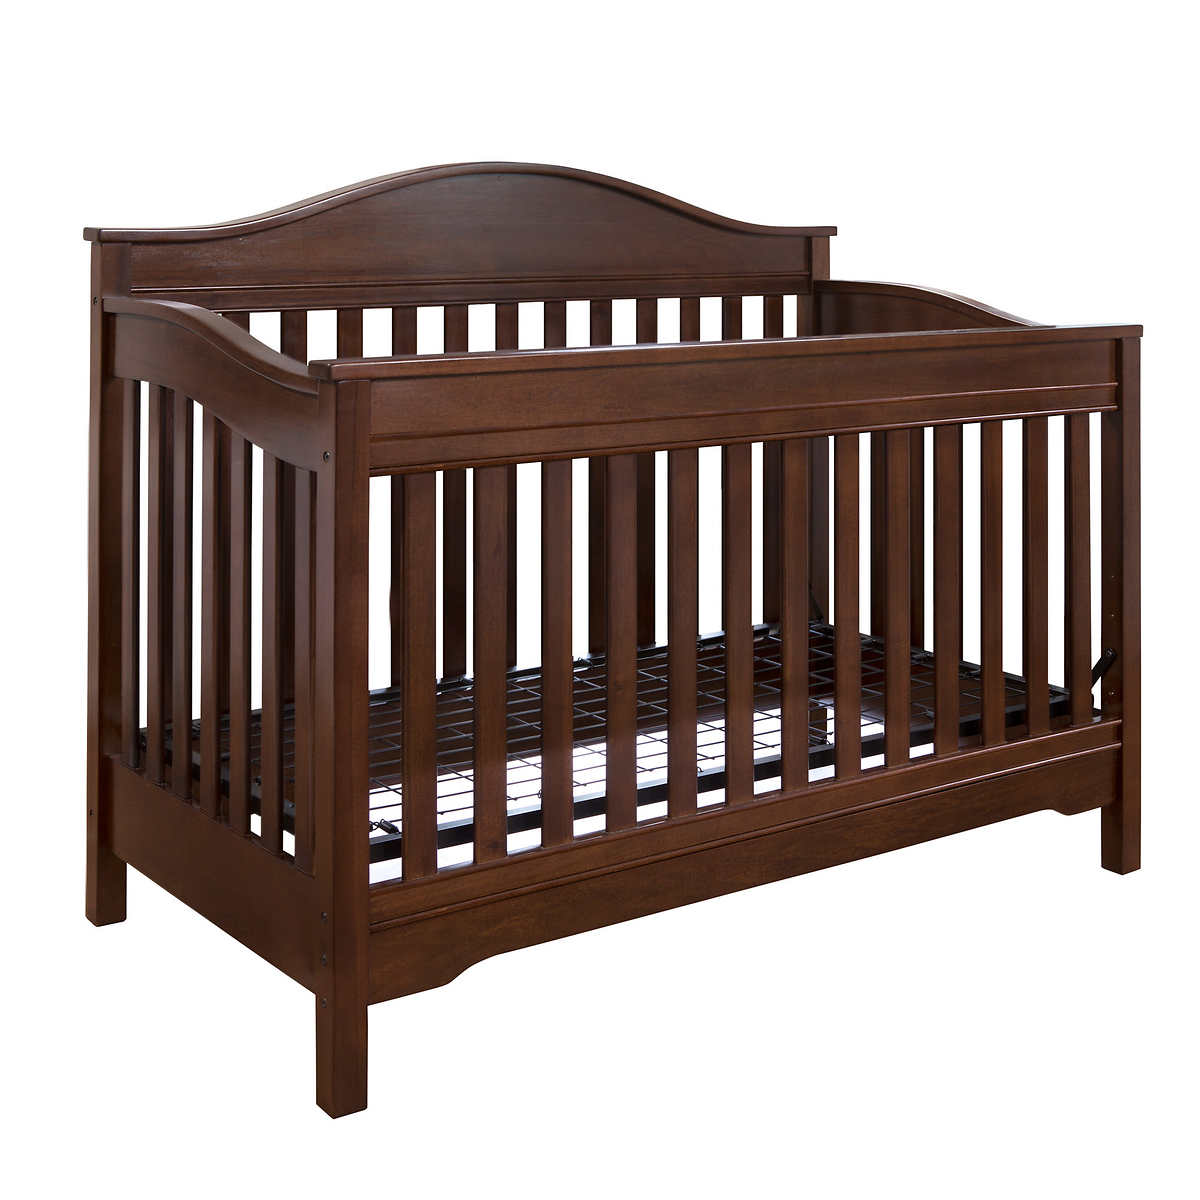 Used crib for sale ottawa - Eddie Bauer Espresso Langley 3 In 1 Crib